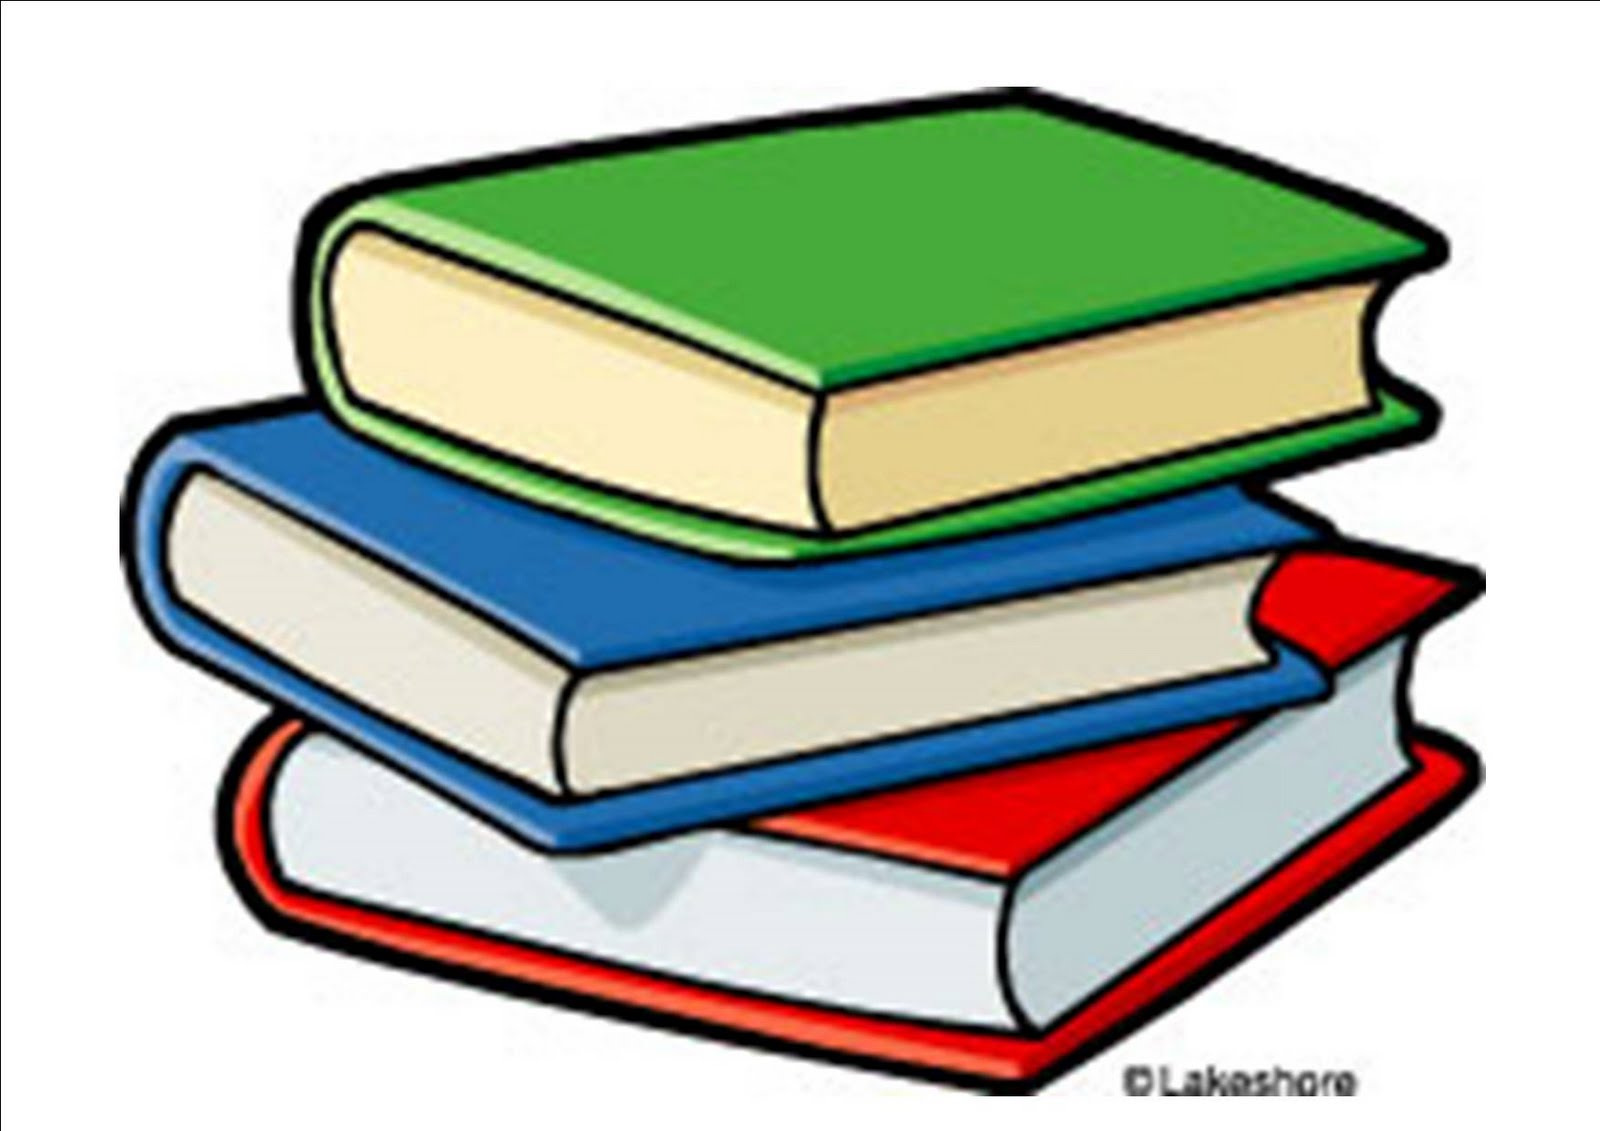 Free Books Basket Cliparts, Download Free Clip Art, Free.